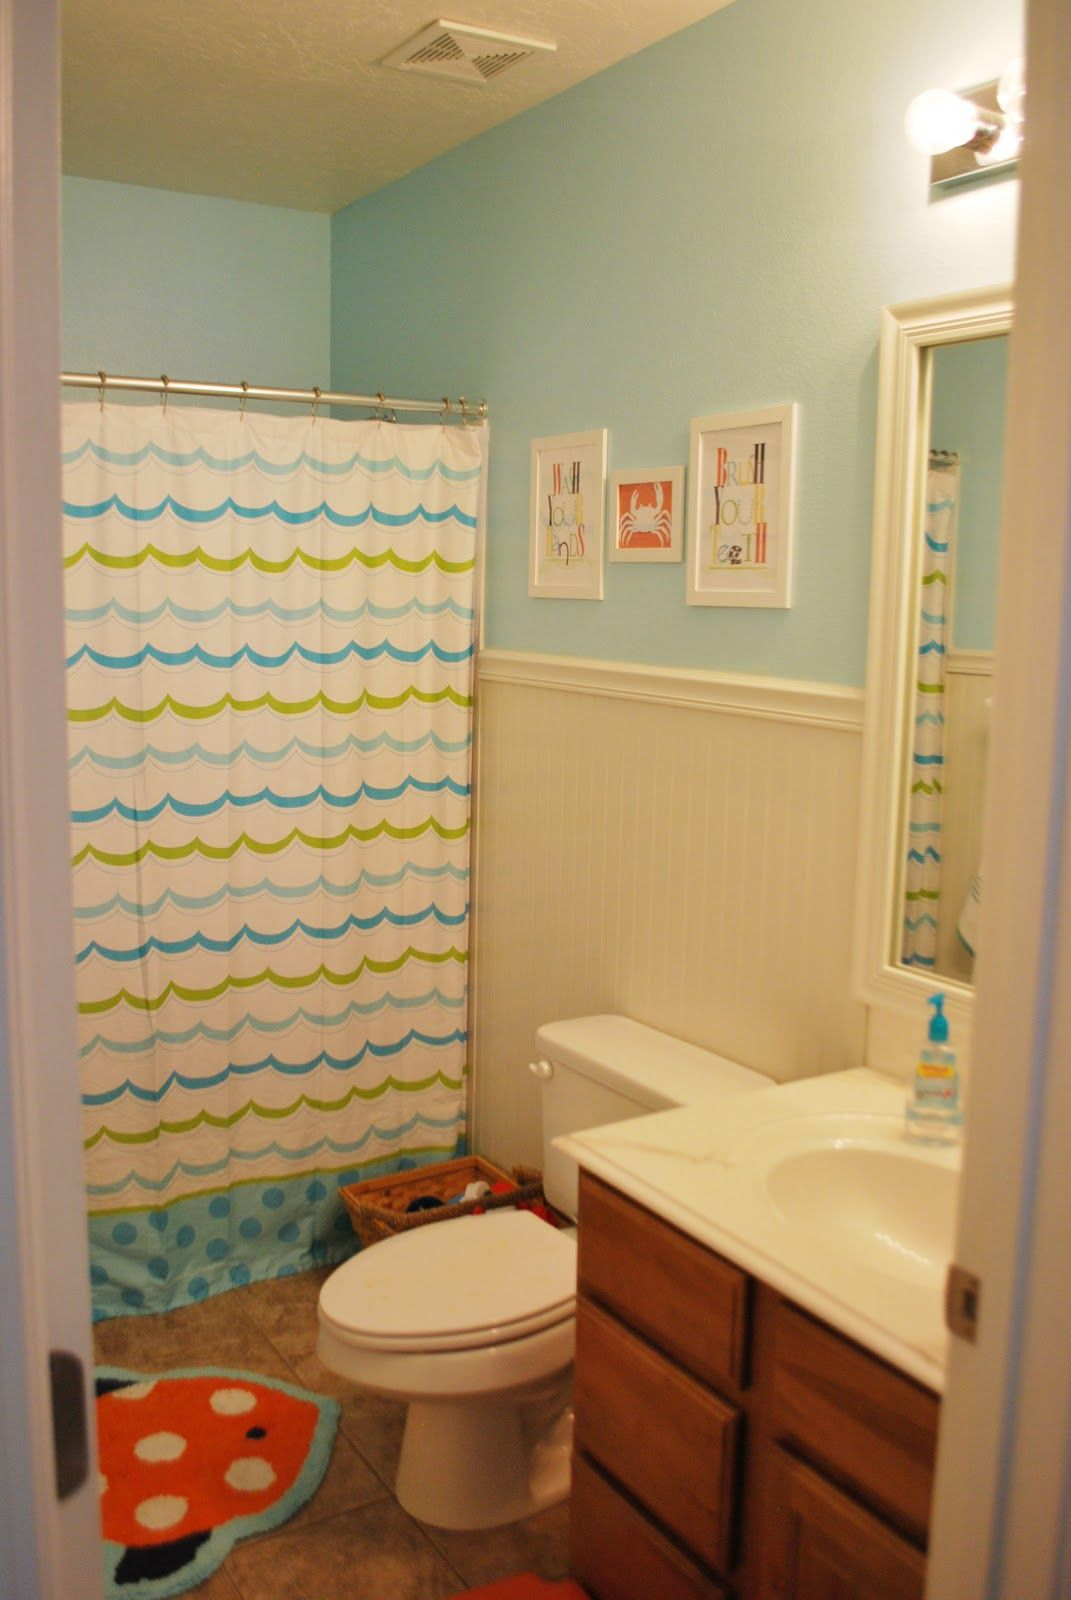 Etonnant Cute And Colorful Kids Bathroom Ideas [Fun Design Solutions For Your Home]